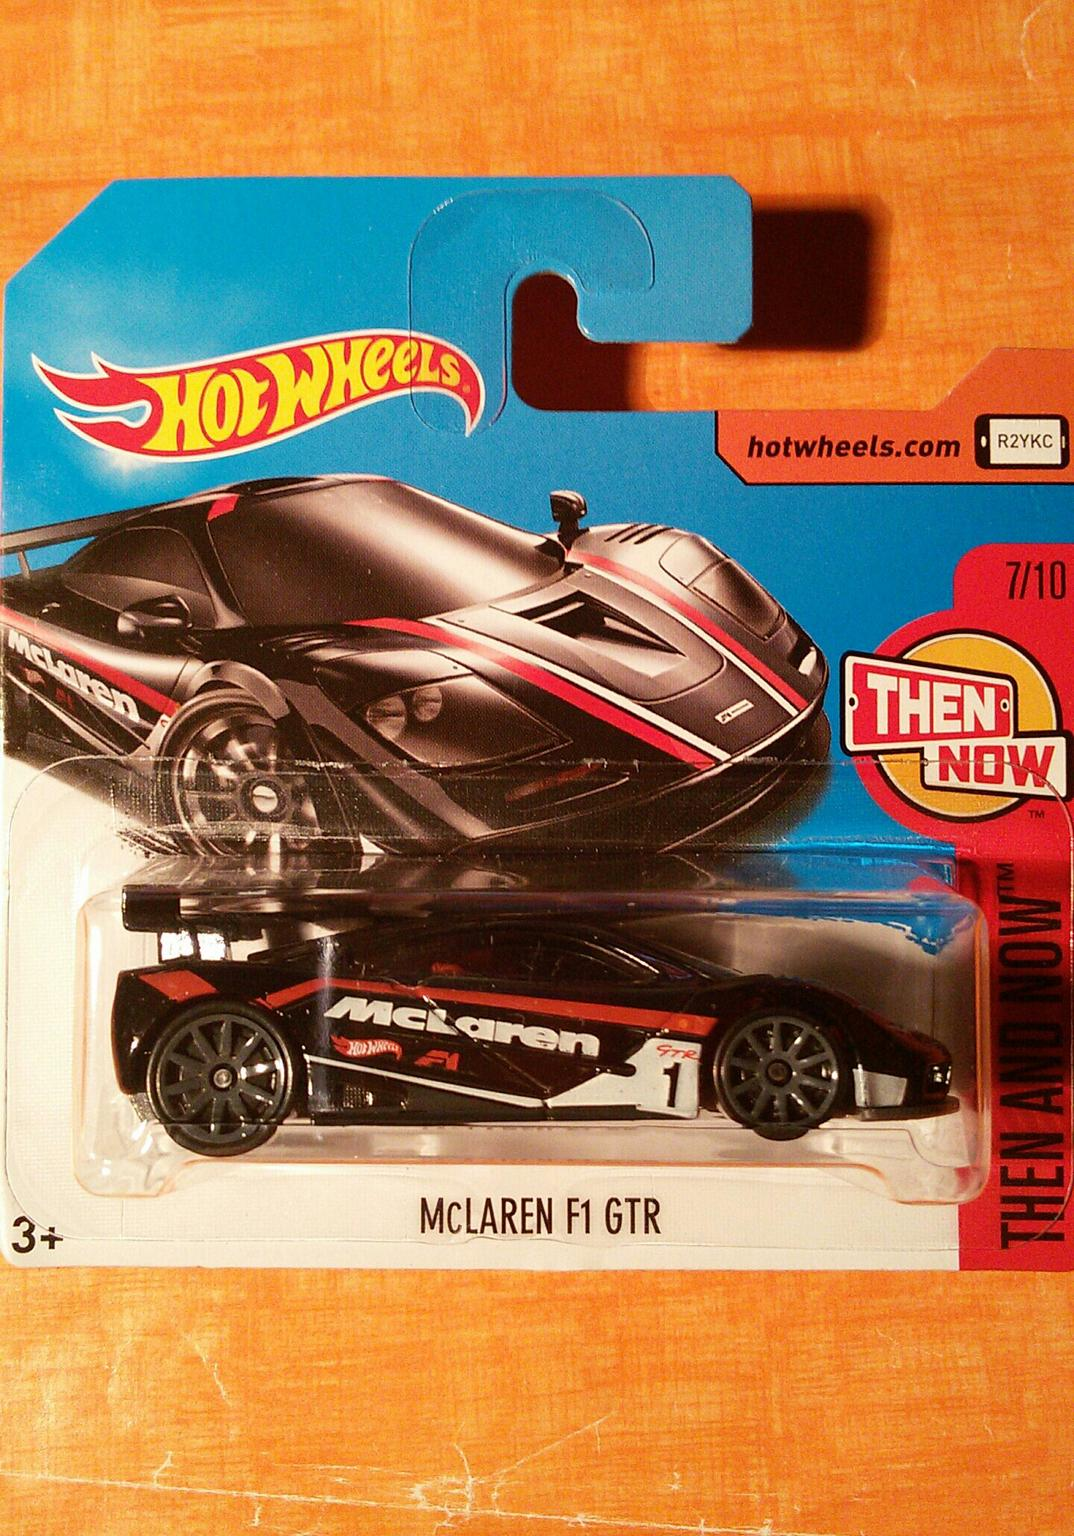 🚘 HOT WHEELS: McLAREN F1 GTR